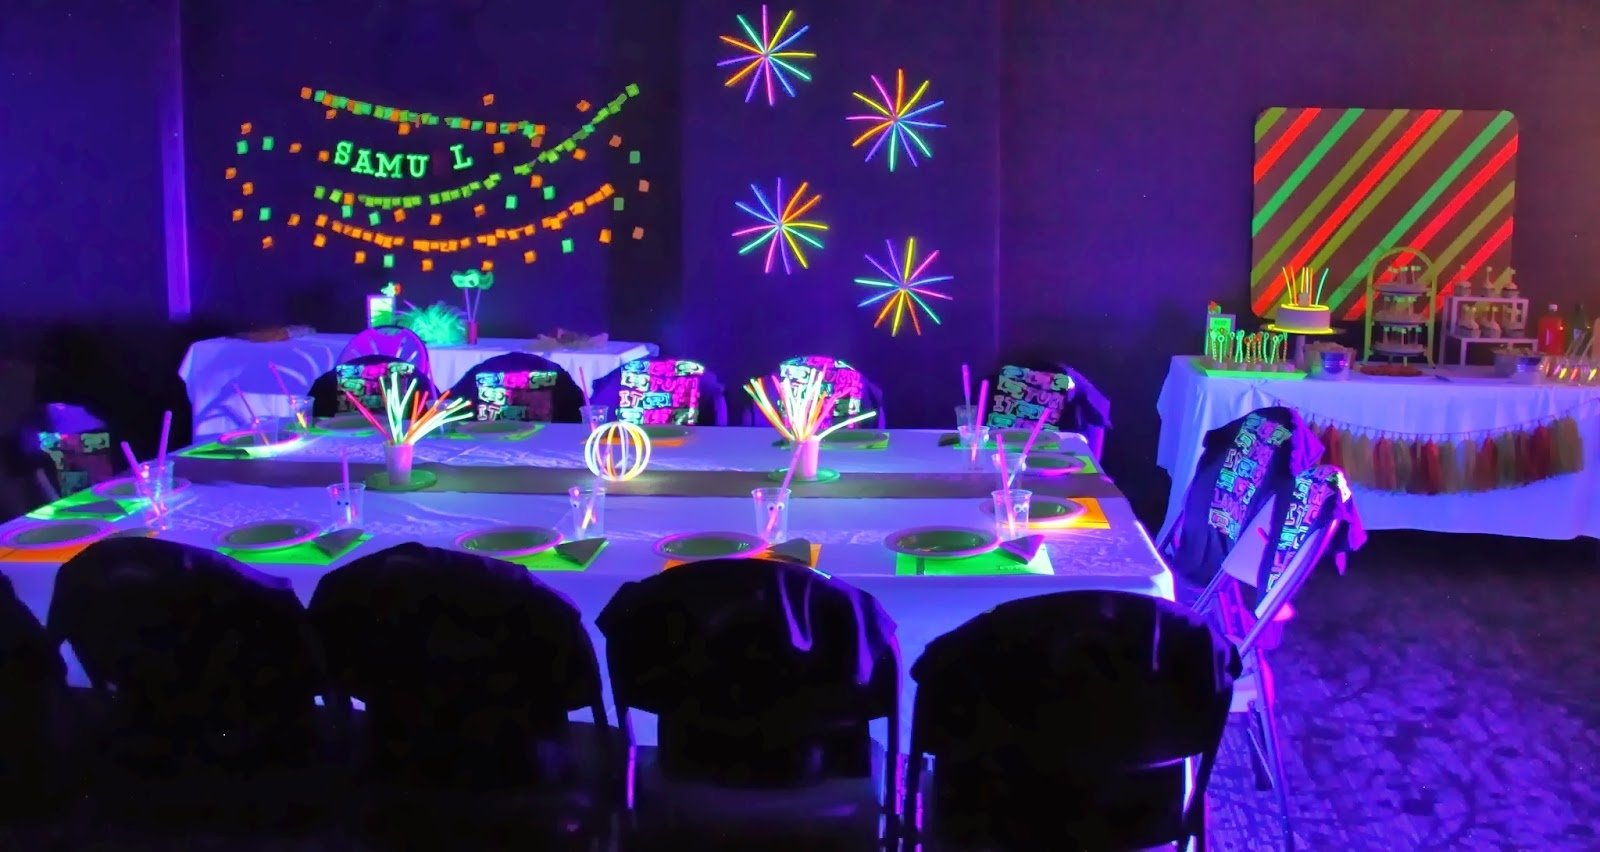 10 attractive sweet 16 party ideas for boys